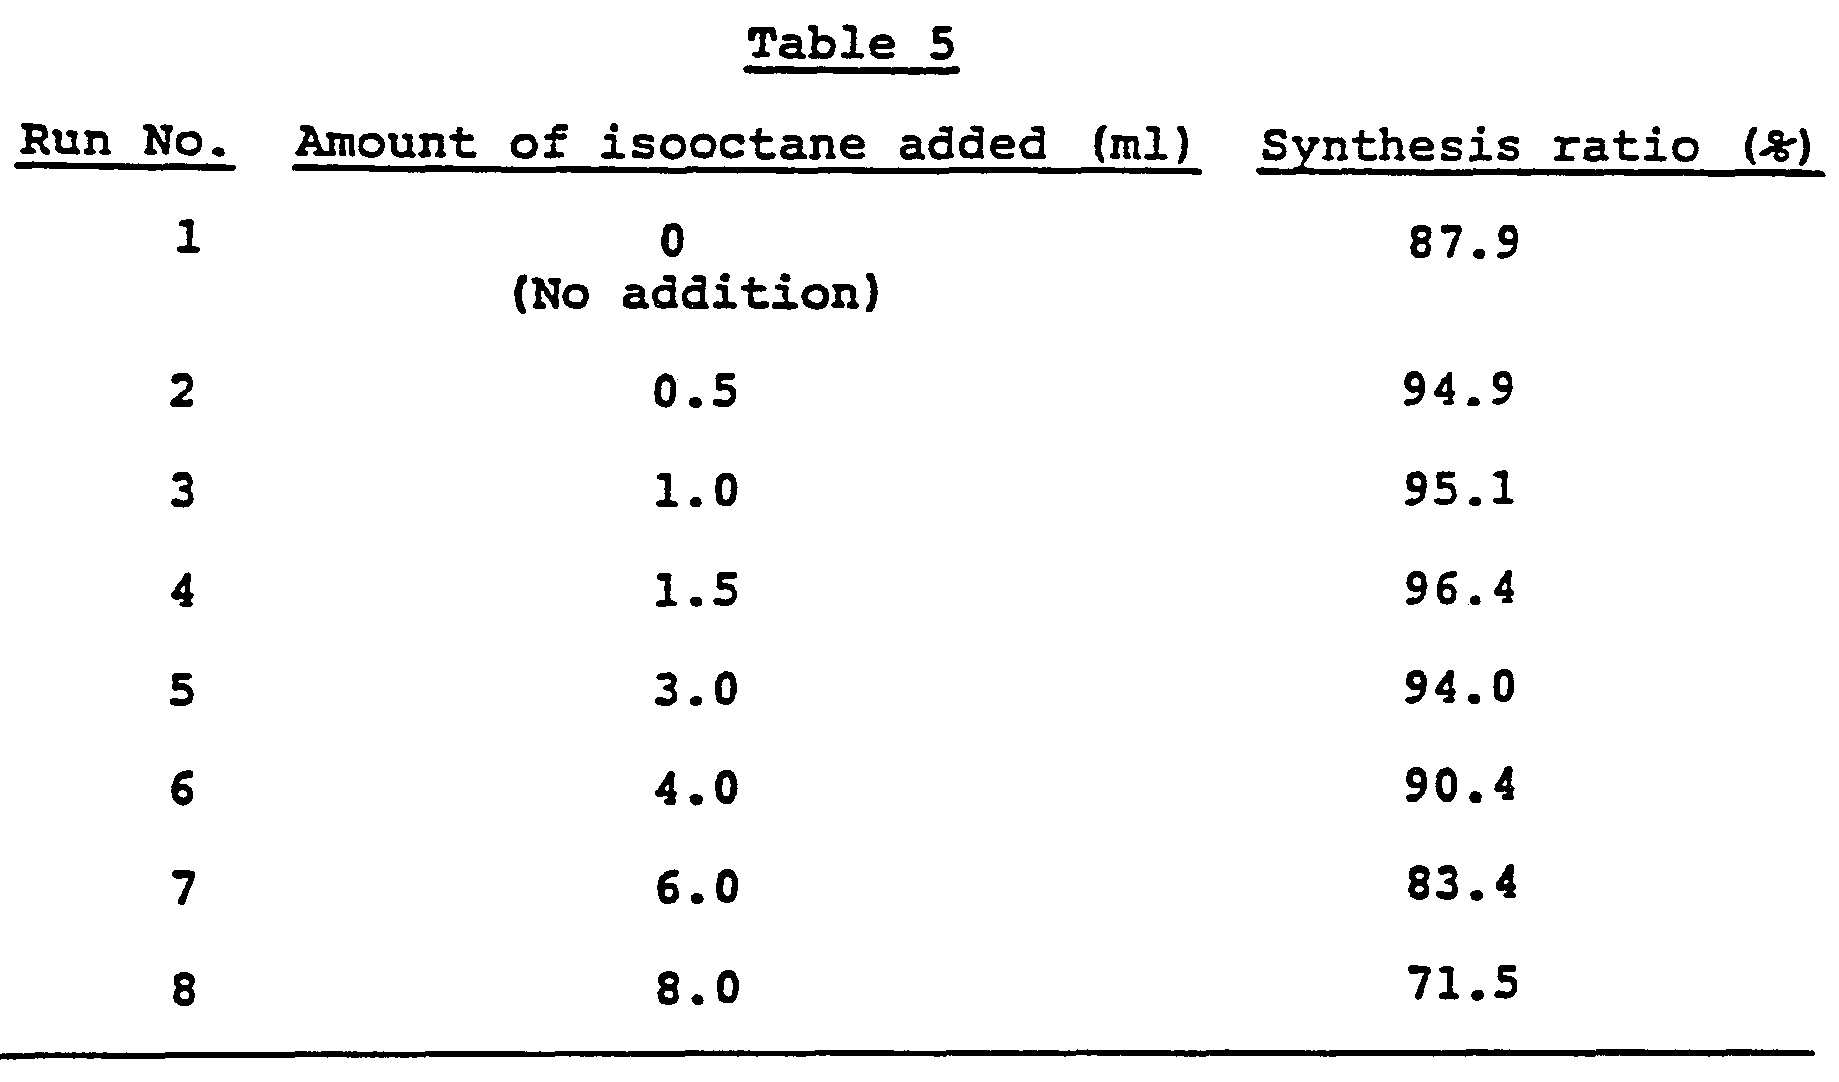 separation of the phosphoric esters on the filter paper chromatography Separation and estimation of organic acids on paper chromatograms   separation of the phosphoric esters on the filter paper chromatogram nature  1949 dec.